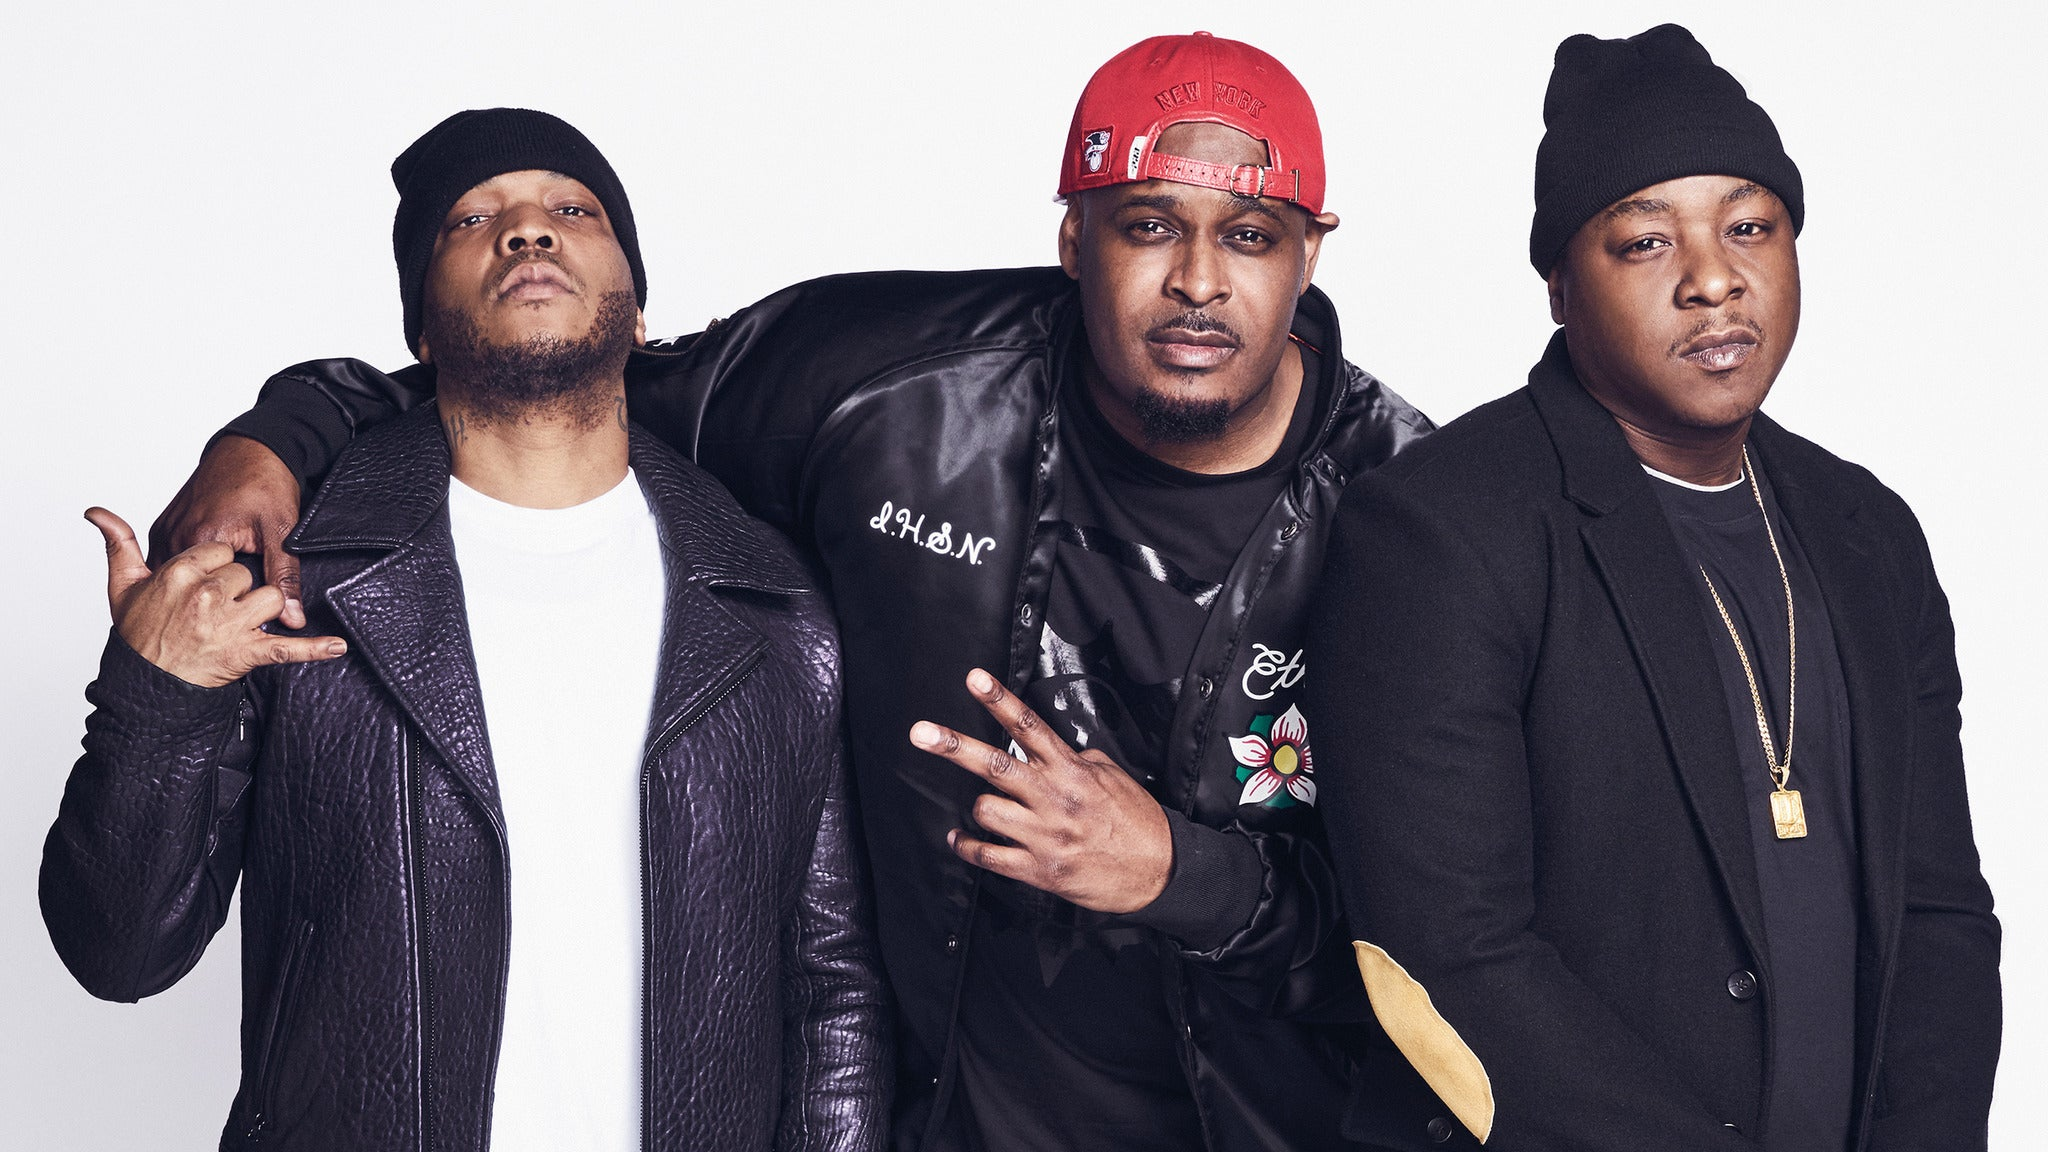 The Lox at Theatre of Living Arts